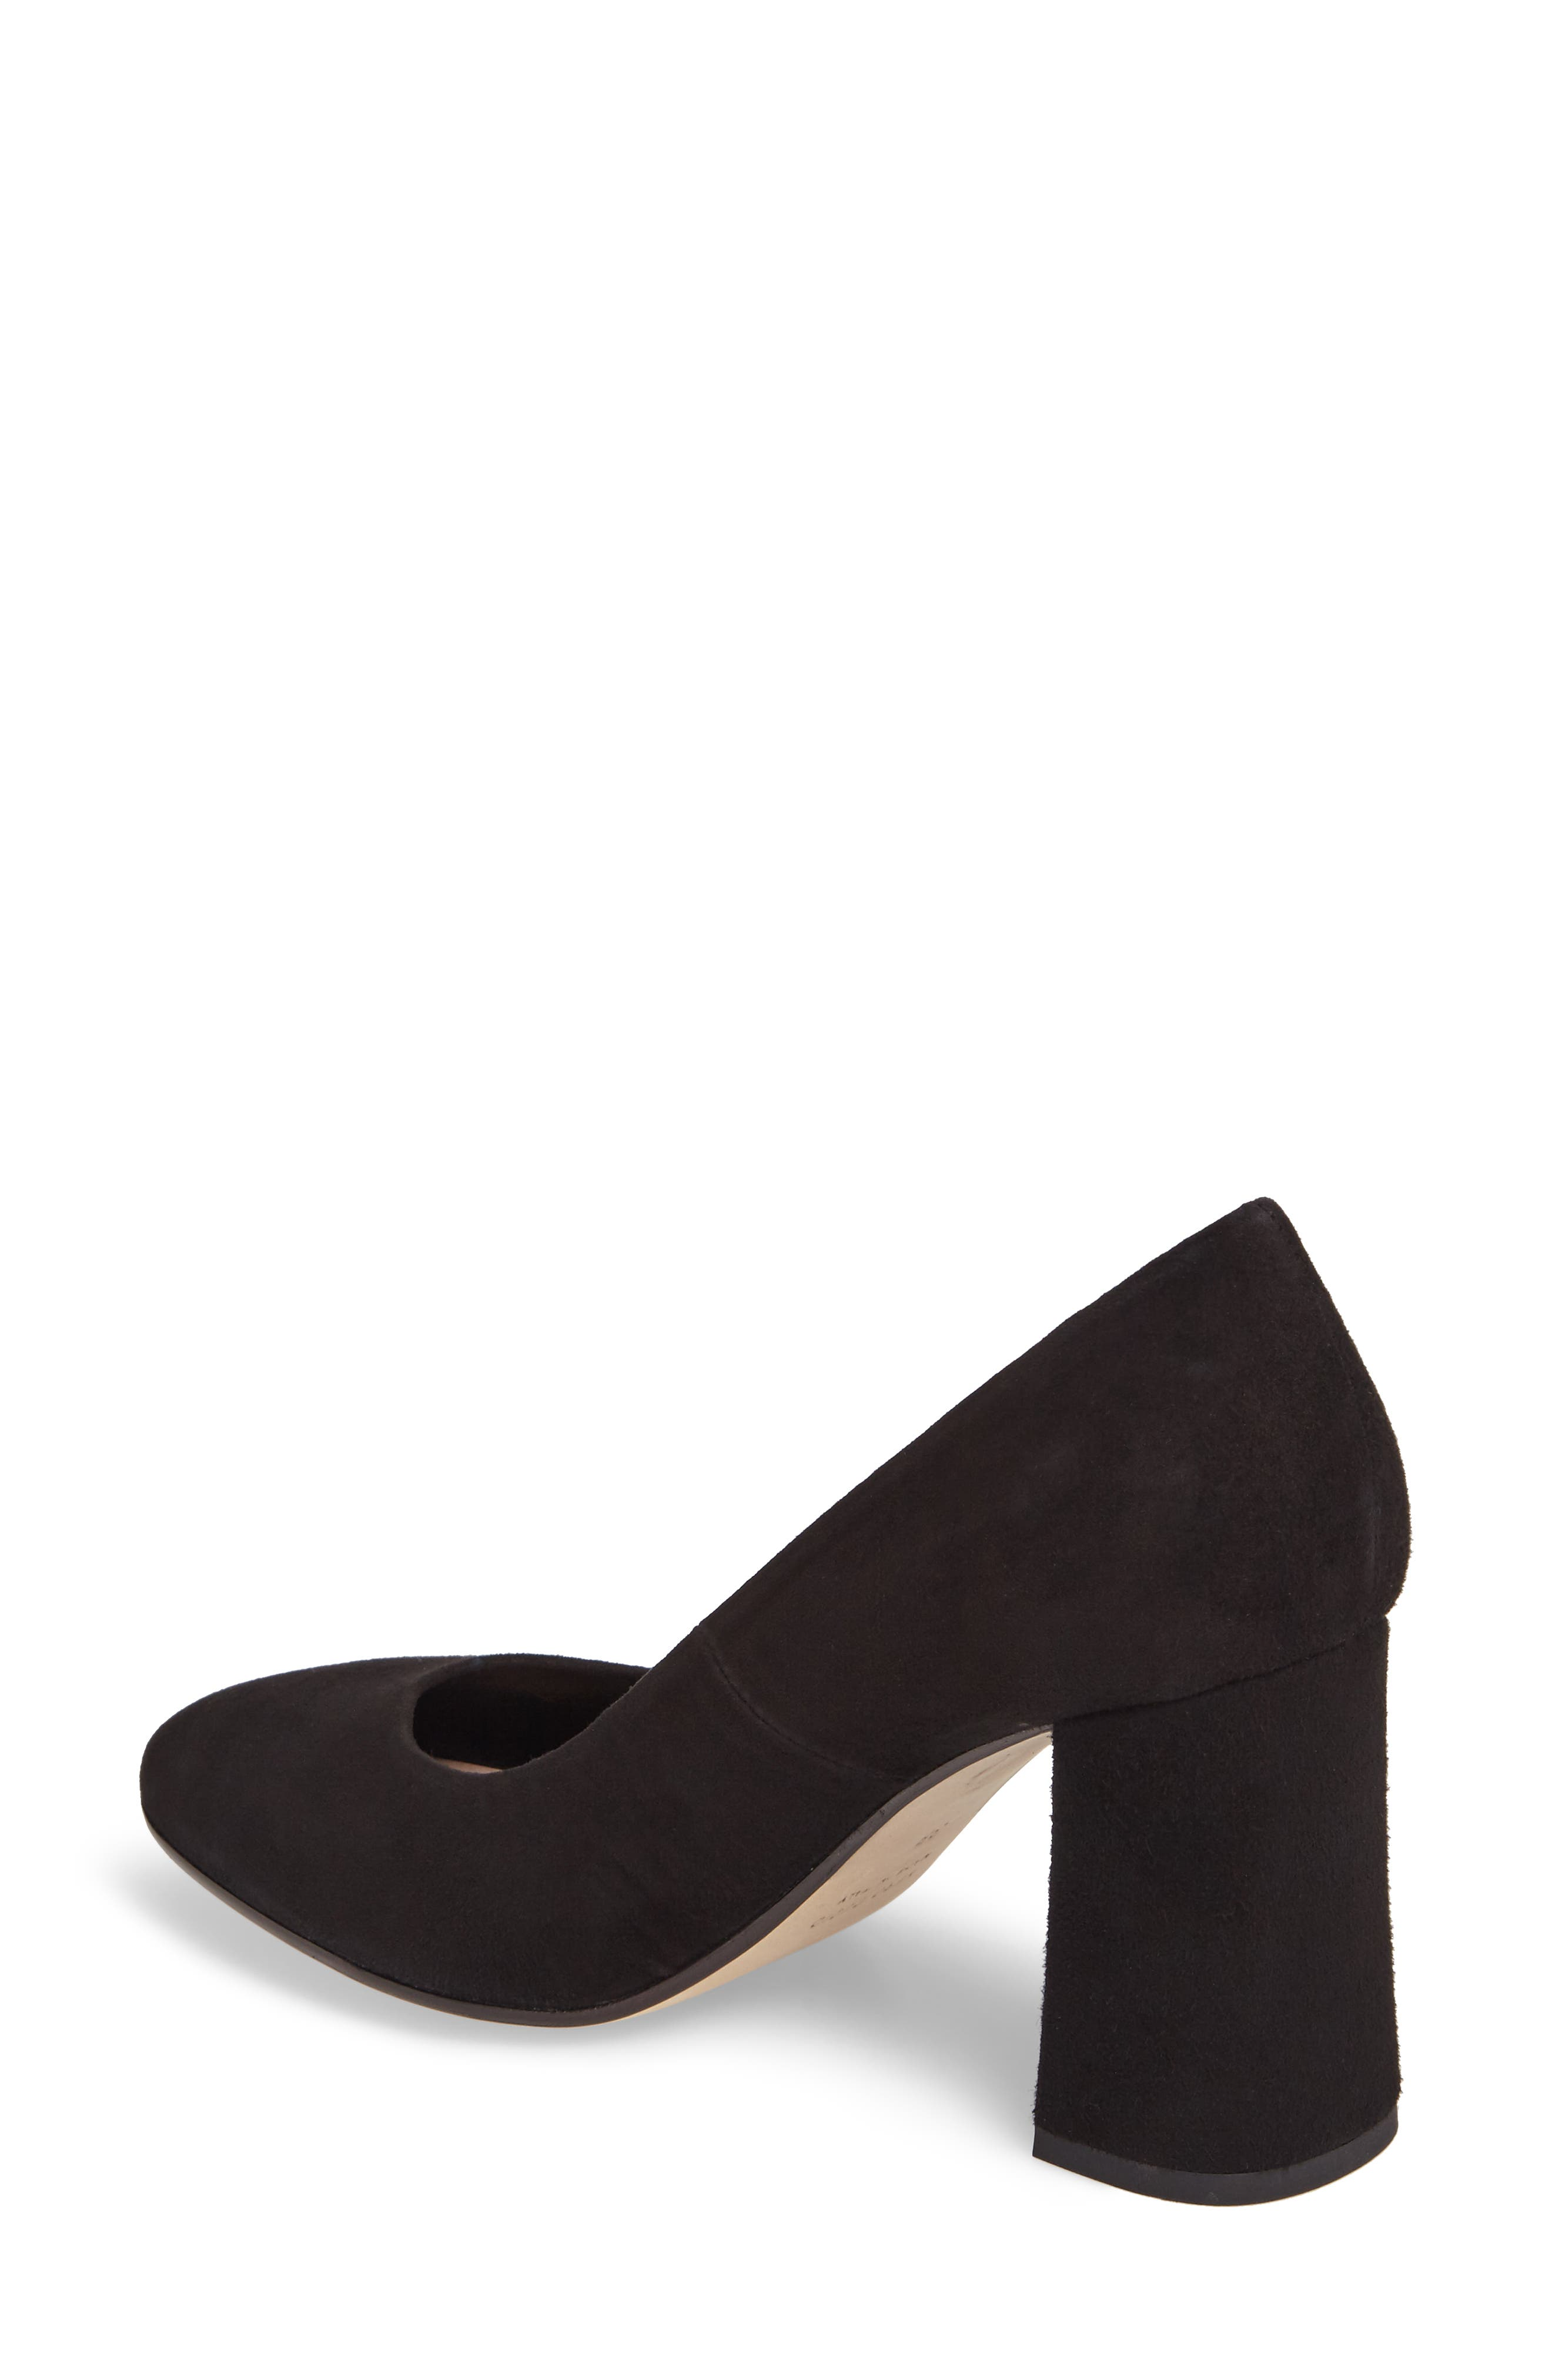 Hanette Pump,                             Alternate thumbnail 2, color,                             BLACK SUEDE